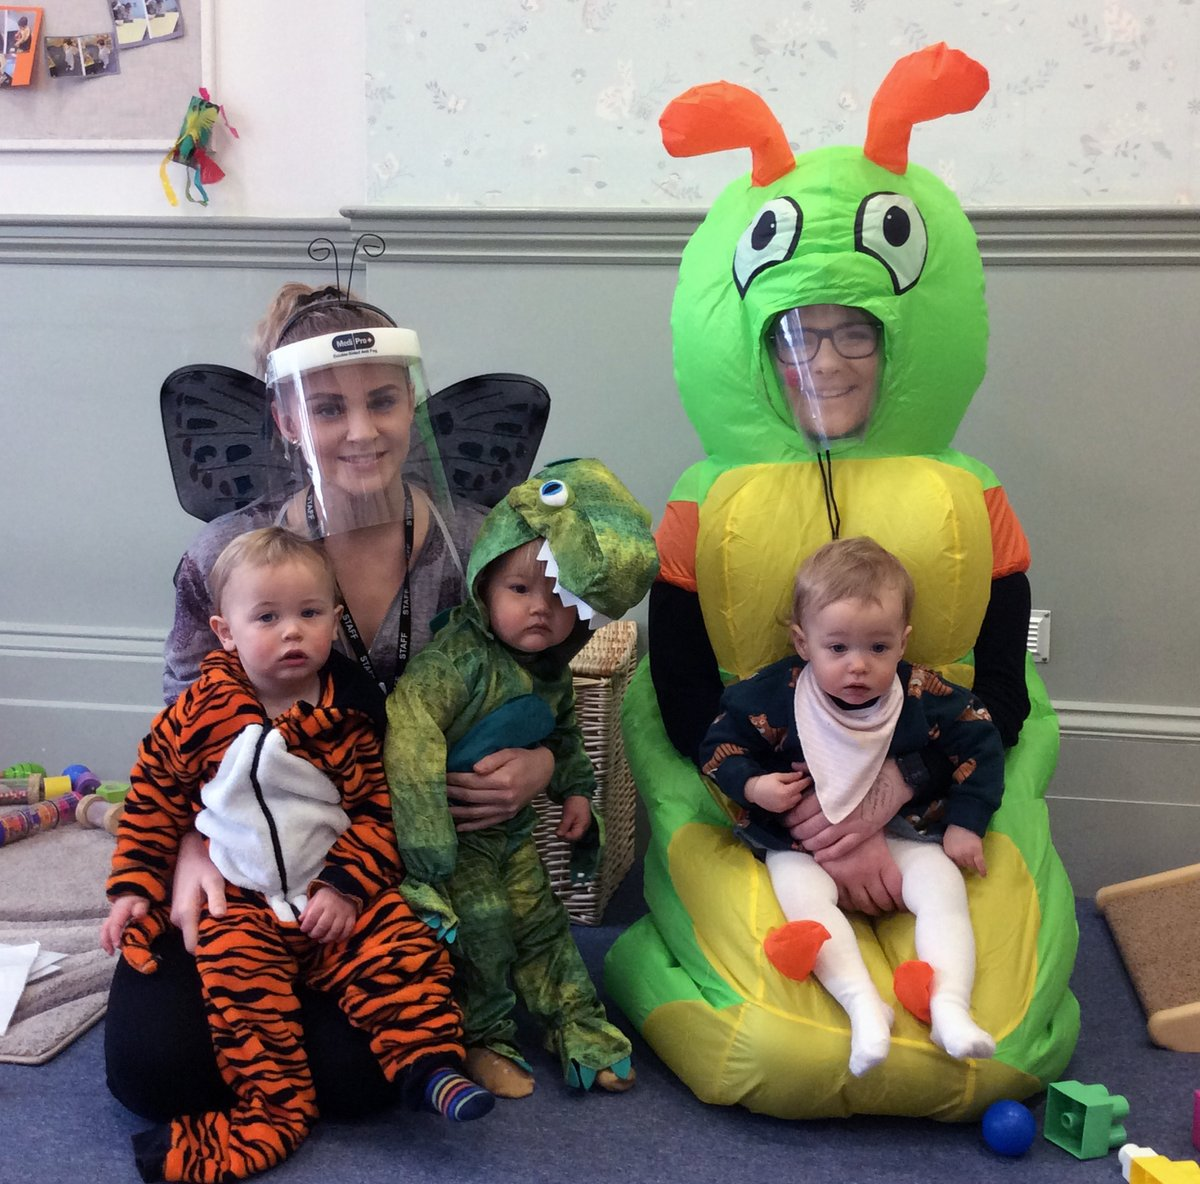 WORLD BOOK DAY Our youngest children in Highgrove Nursery have also been having great fun today ... well done to everyone in Cottontails, Tiggywinkles, Puddleducks and, of course, the hard-working staff! #WorldBookDay #strongertogether @parenttalksw